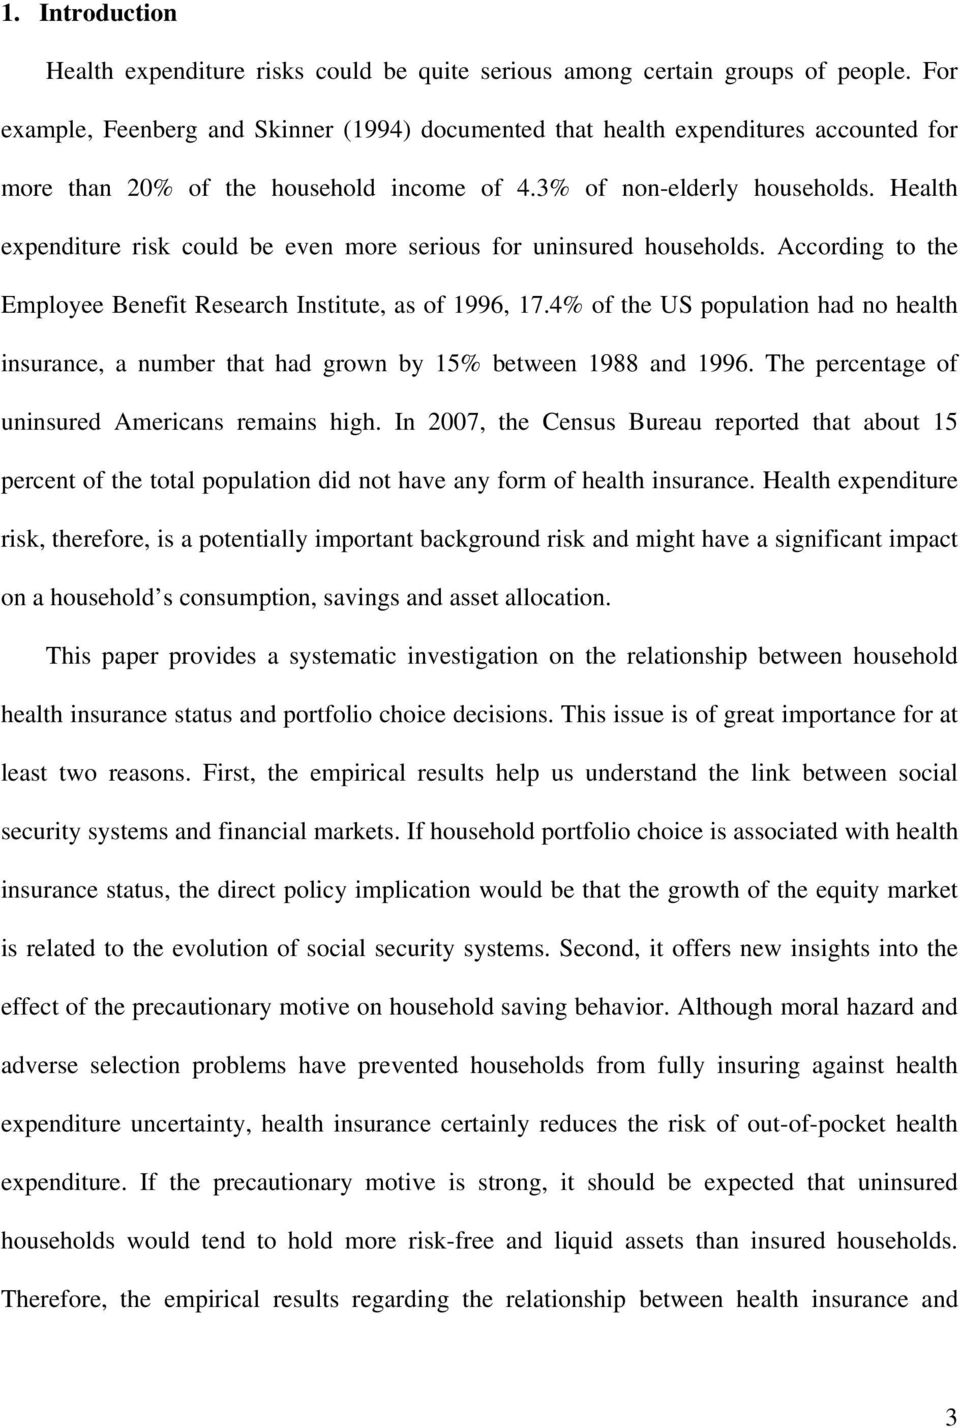 Health expenditure risk could be even more serious for uninsured households. According to the Employee Benefit Research Institute, as of 1996, 17.